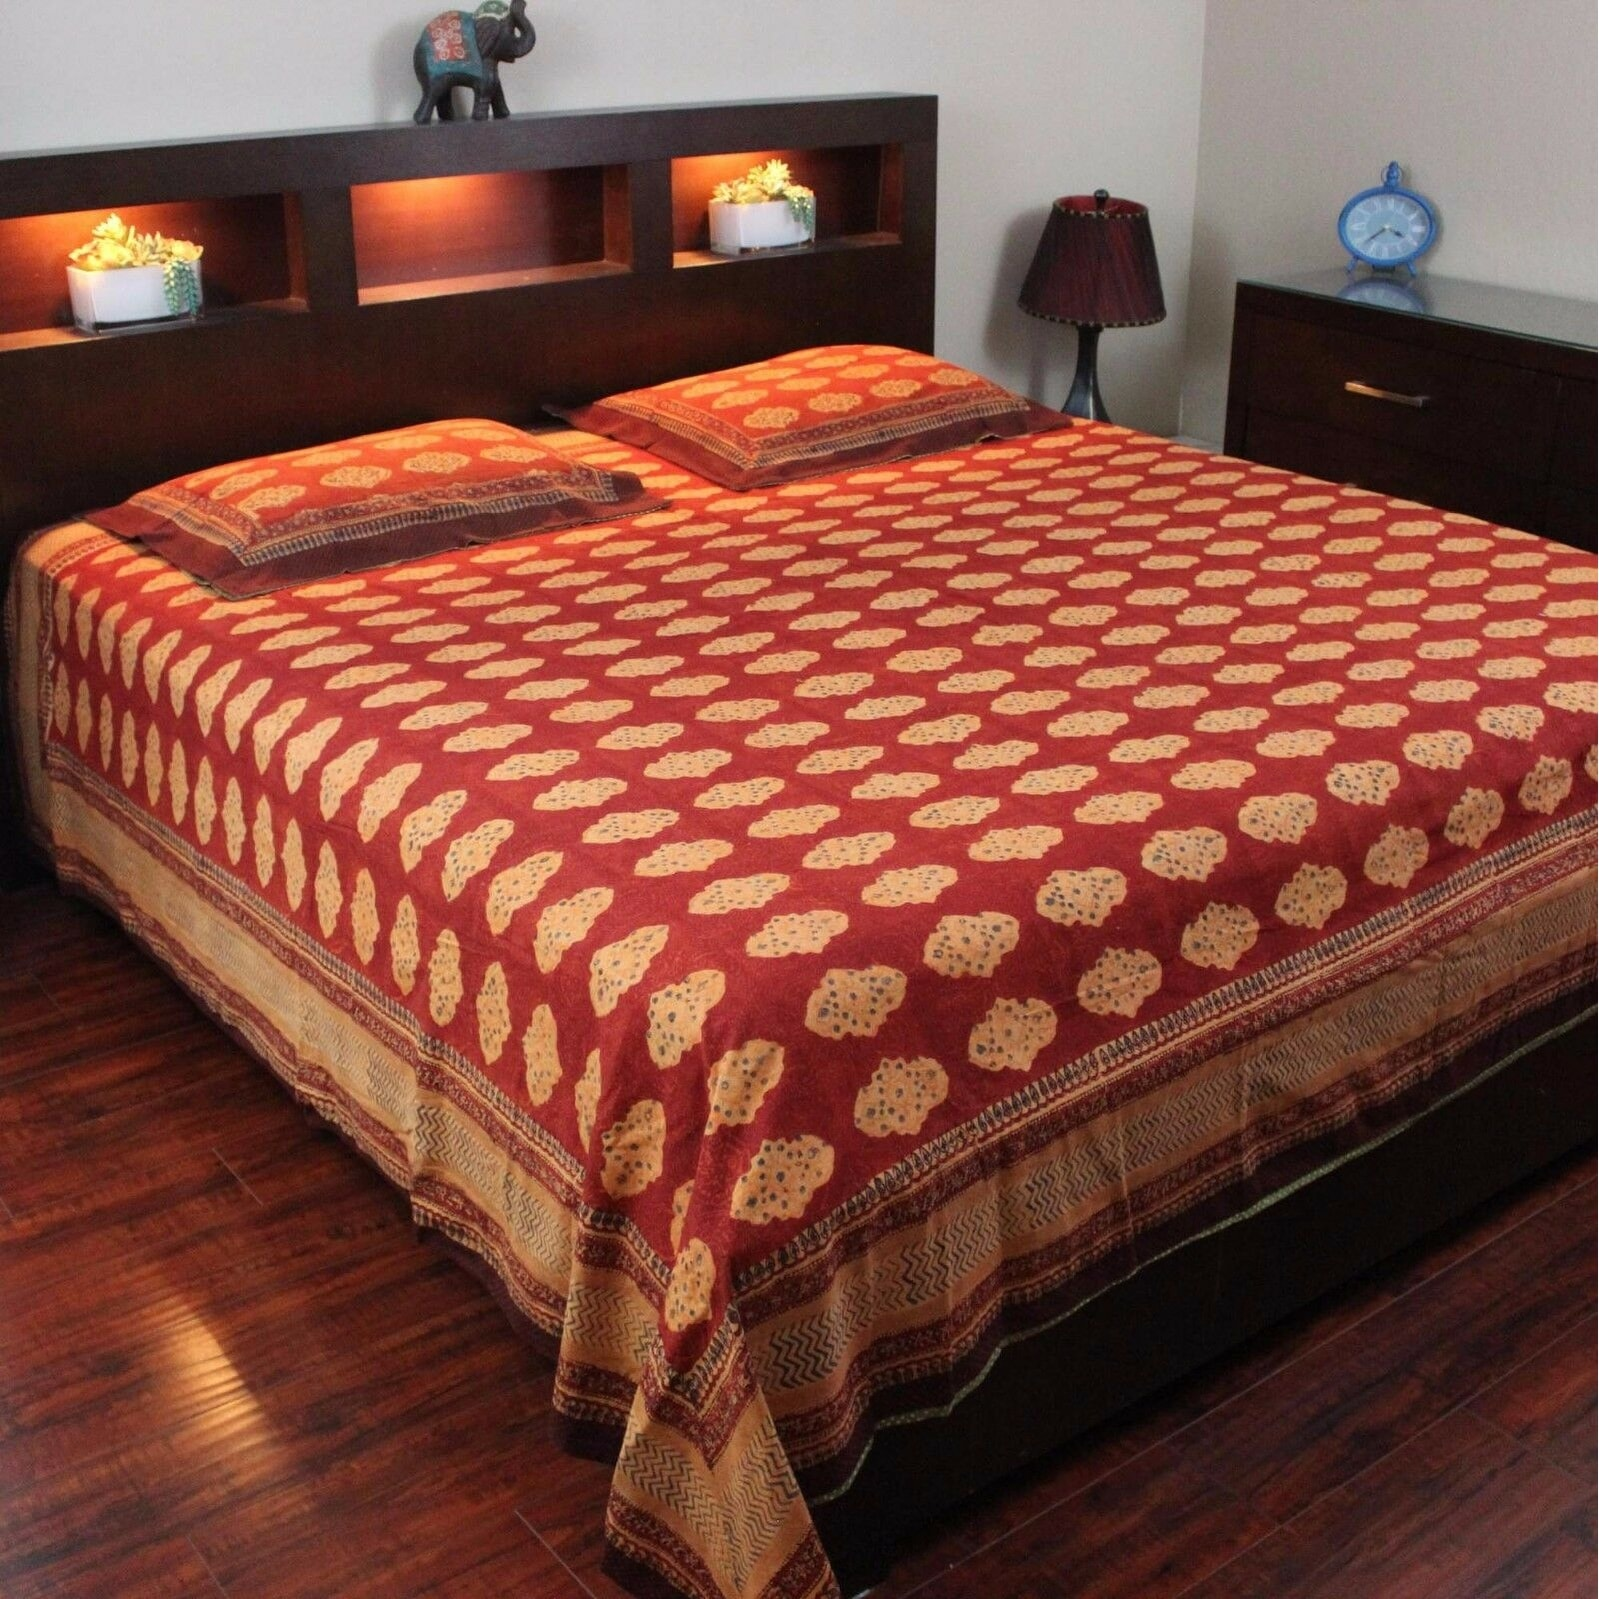 Picture of: Block Print Tablecloth Rectangle Bedspread Cotton Queen Size Bed Sheets Twin Full Size Dorm Decor Bach Blanket Or Sheet Overstock 13304511